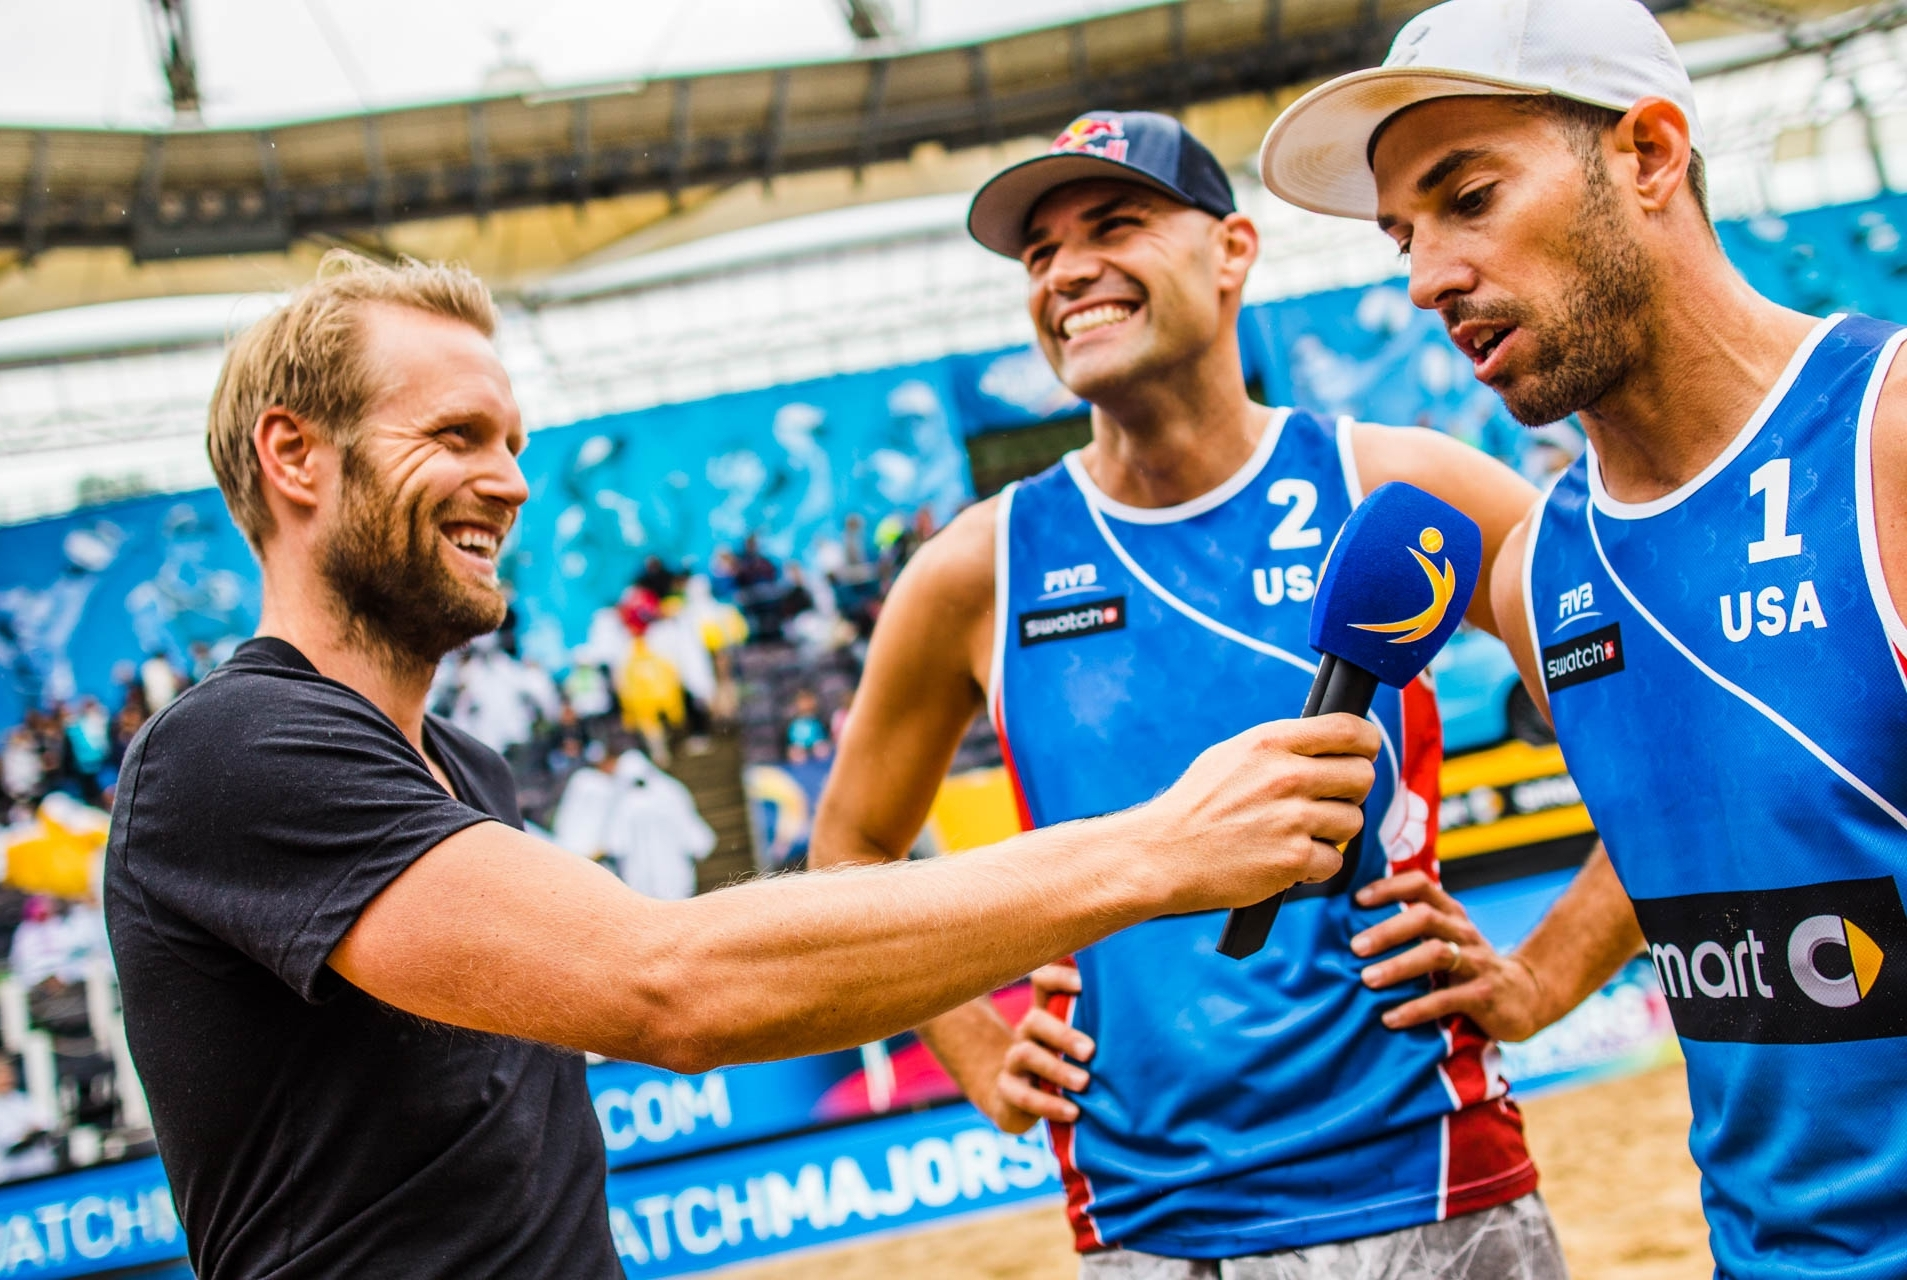 Top men's seeds Lucena/Dalhausser won the Hamburg Major last year